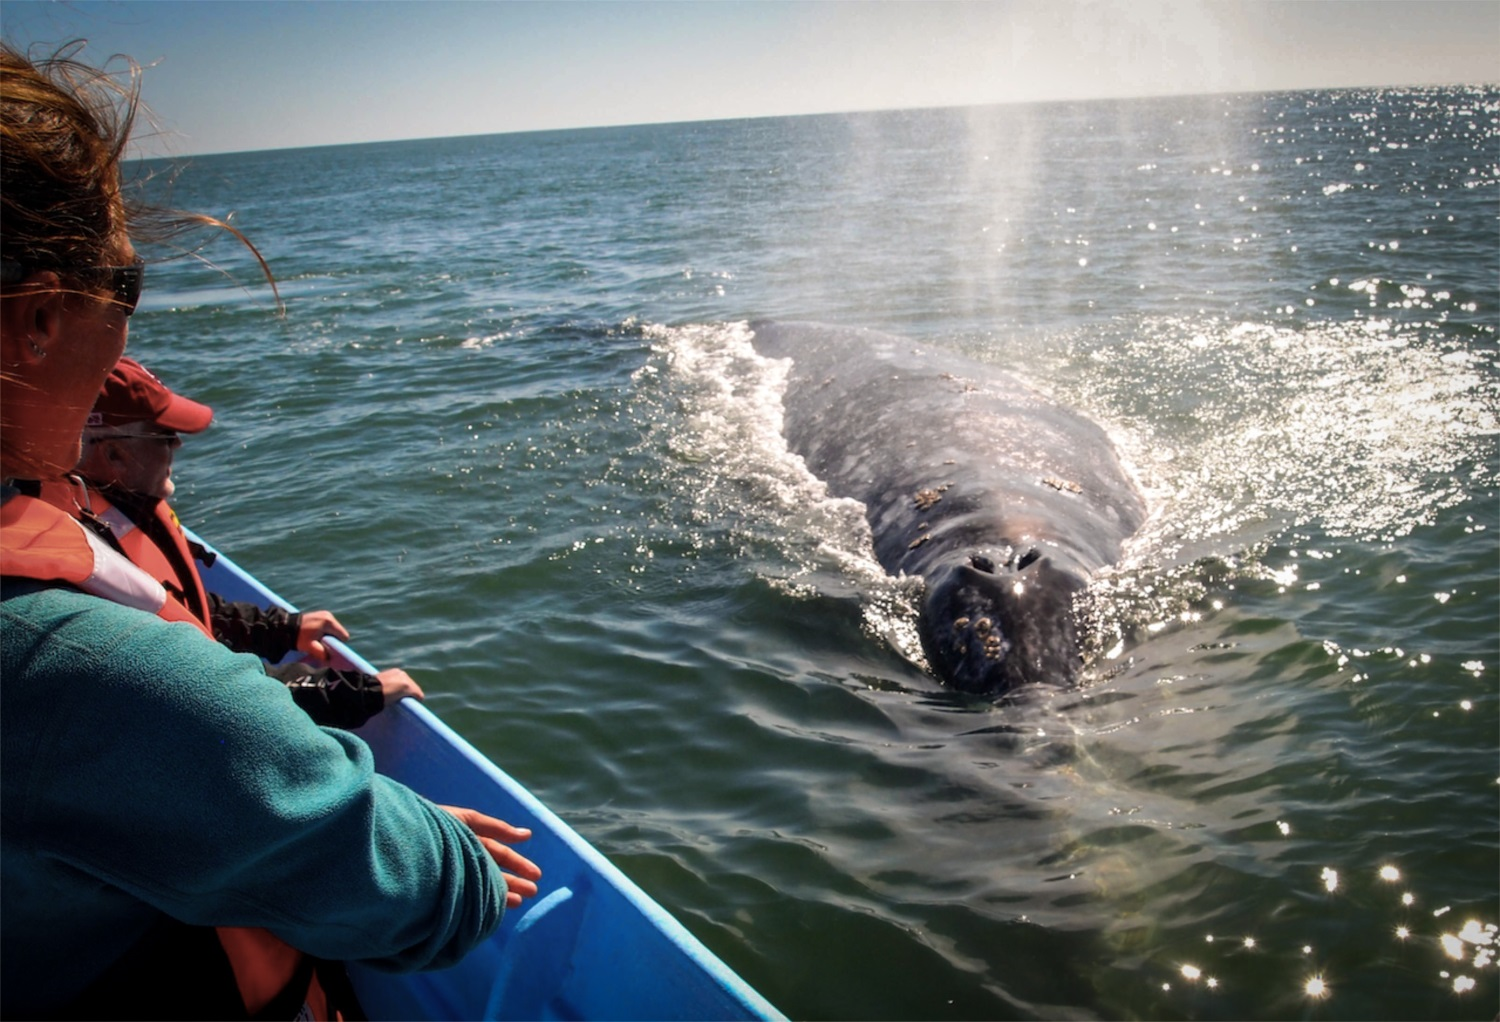 Getting up close to grey whales at Laguna Ojo de Liebre in Baja California.